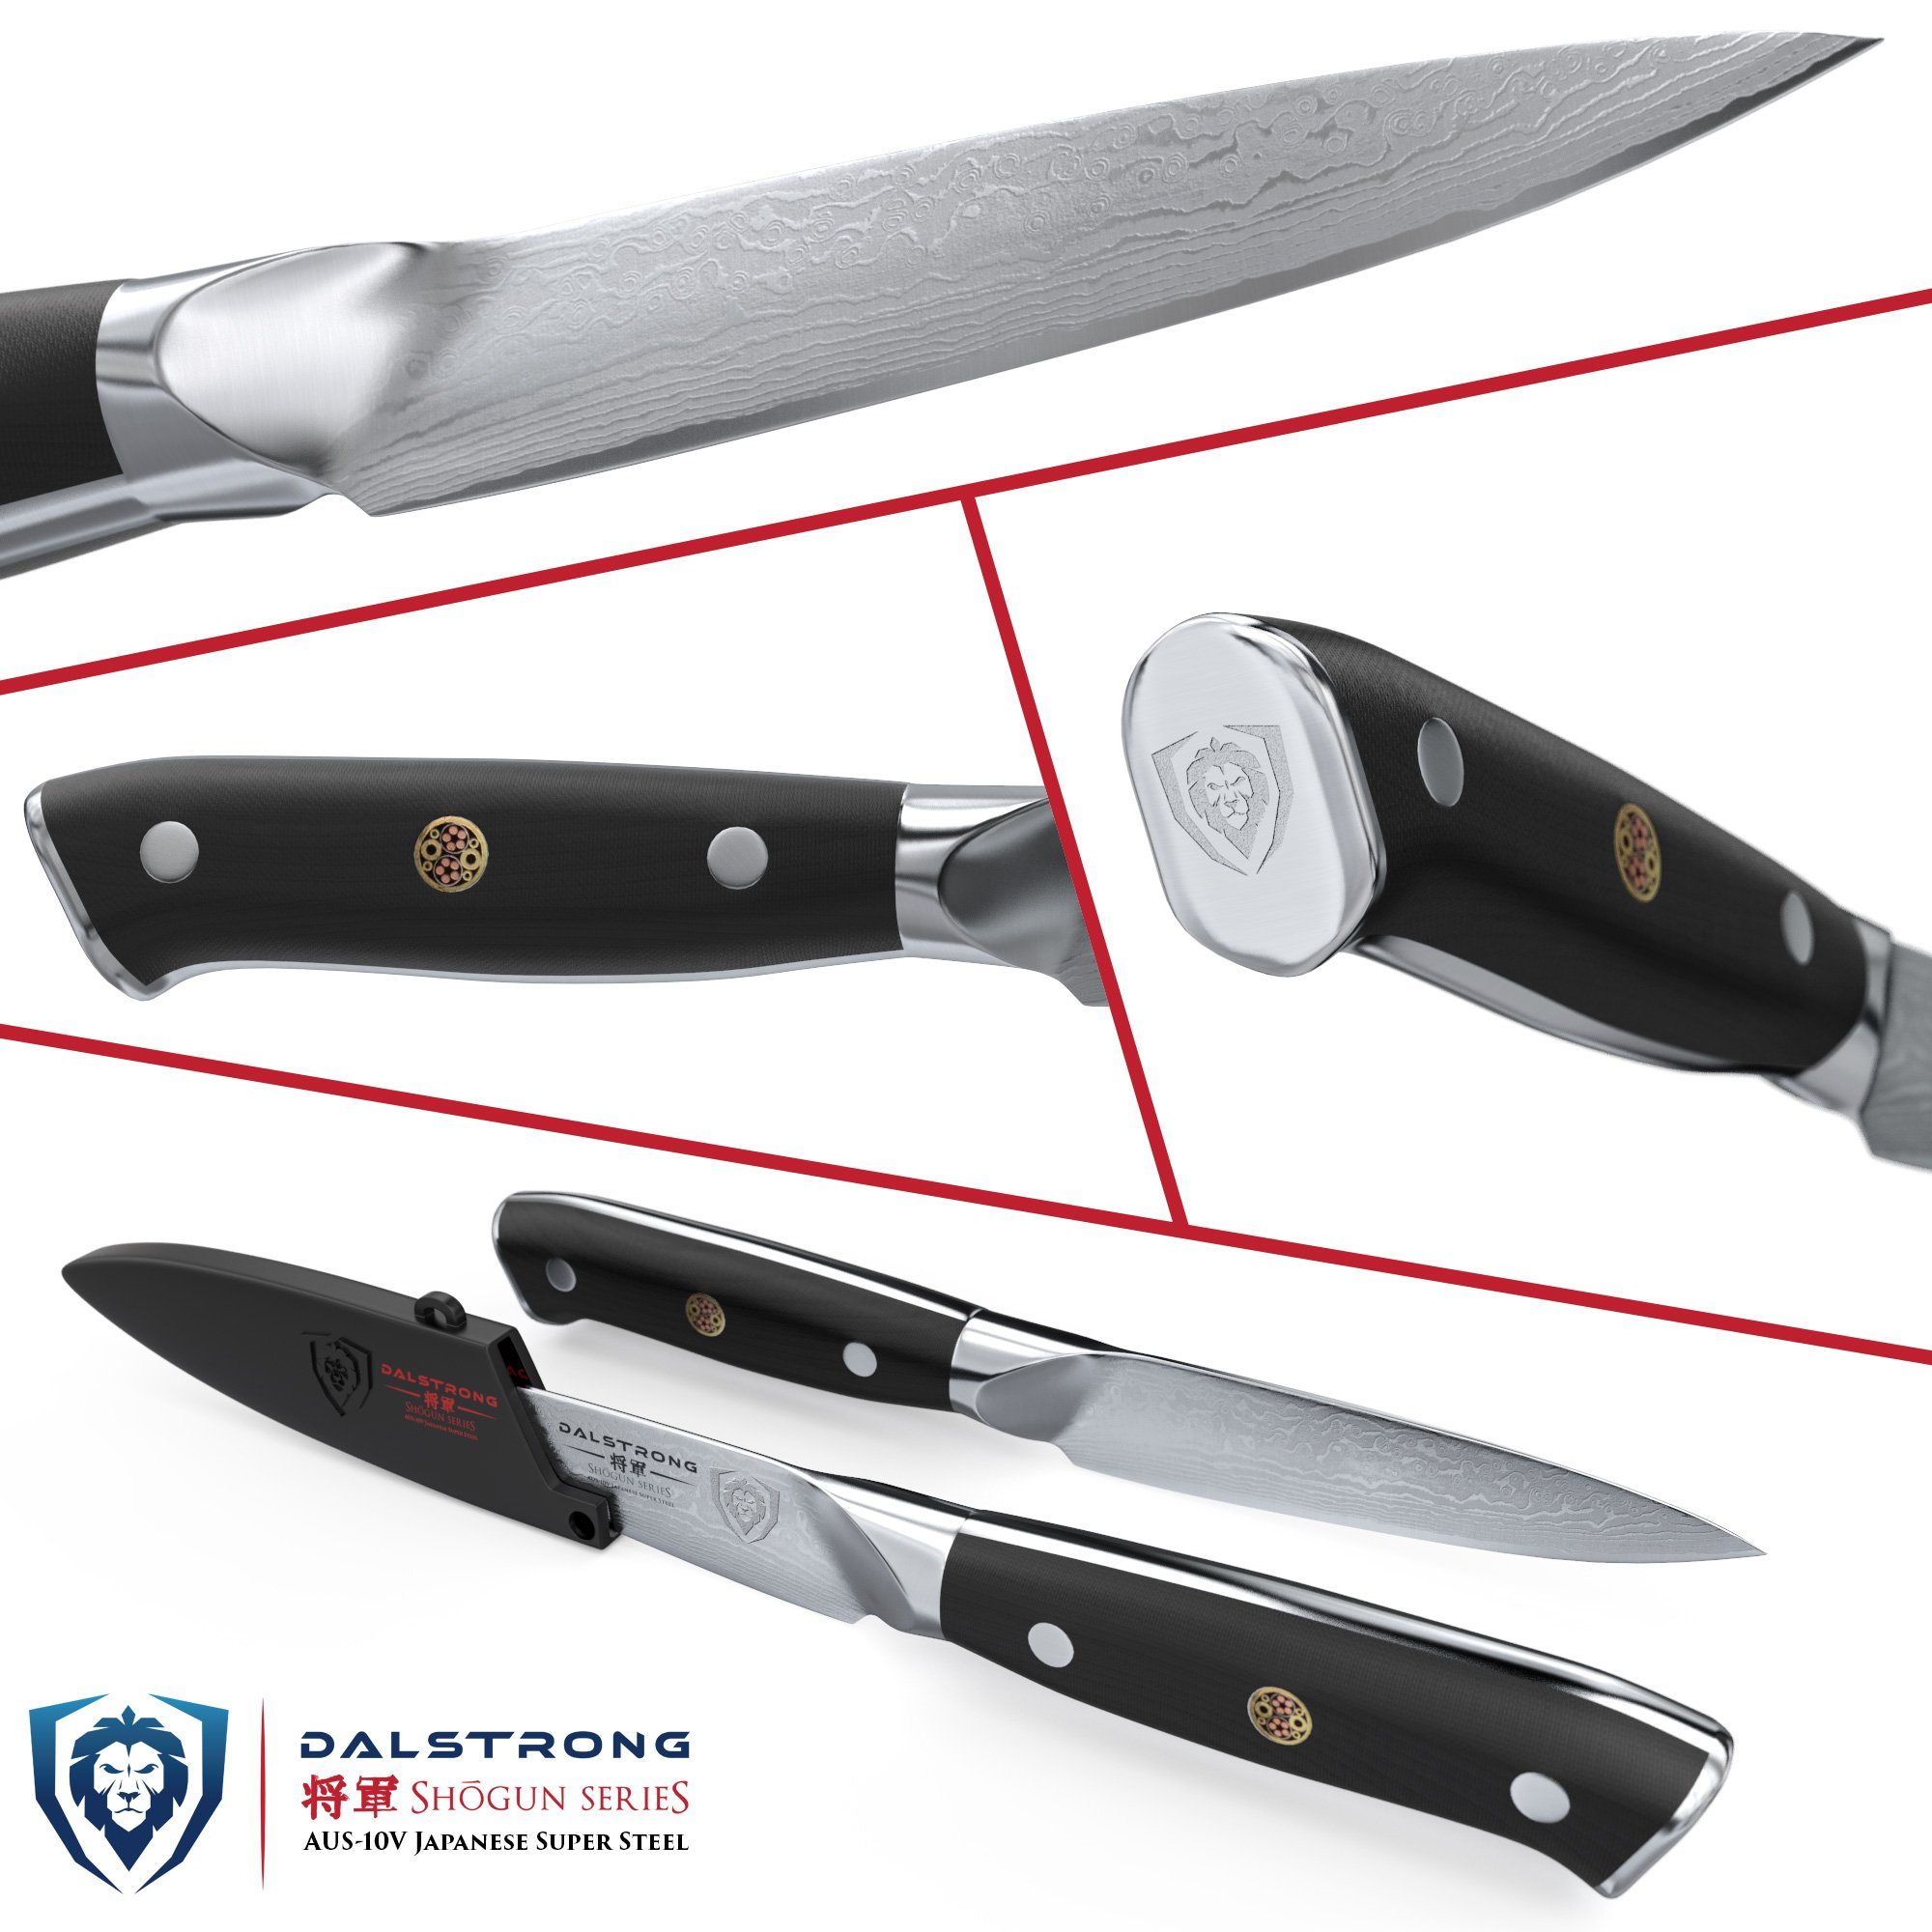 DALSTRONG Paring Knife - Shogun Series - AUS-10V- Vacuum Treated - 3.5'' Paring Knife by Dalstrong (Image #1)